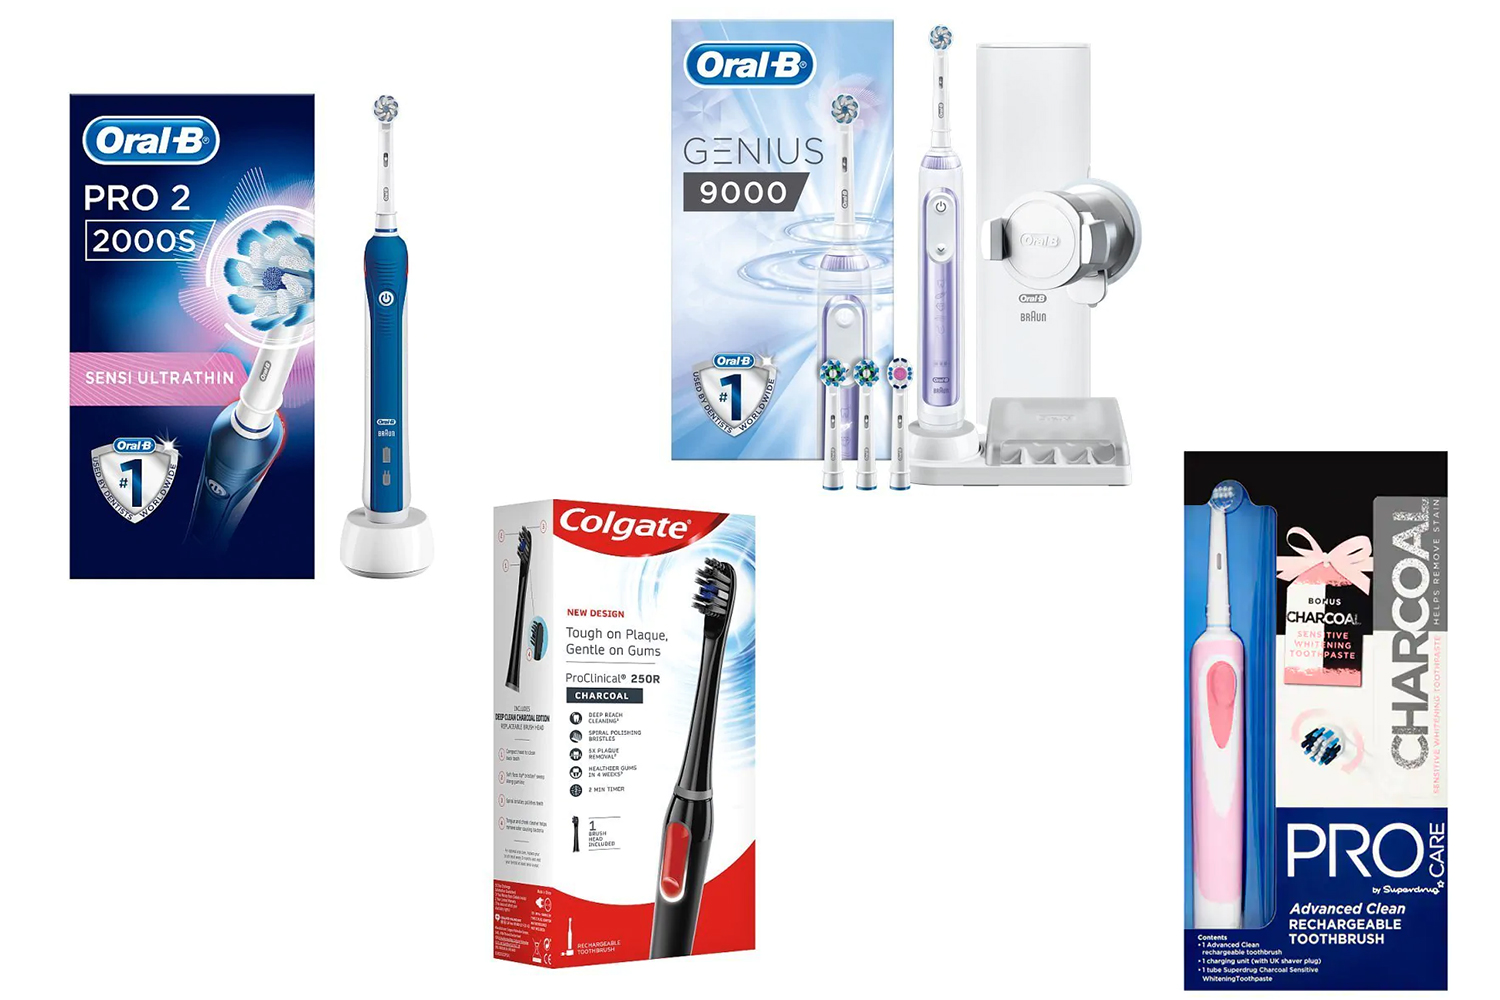 Superdrug knocked £200 off of Oral-B's Genius 900 last year